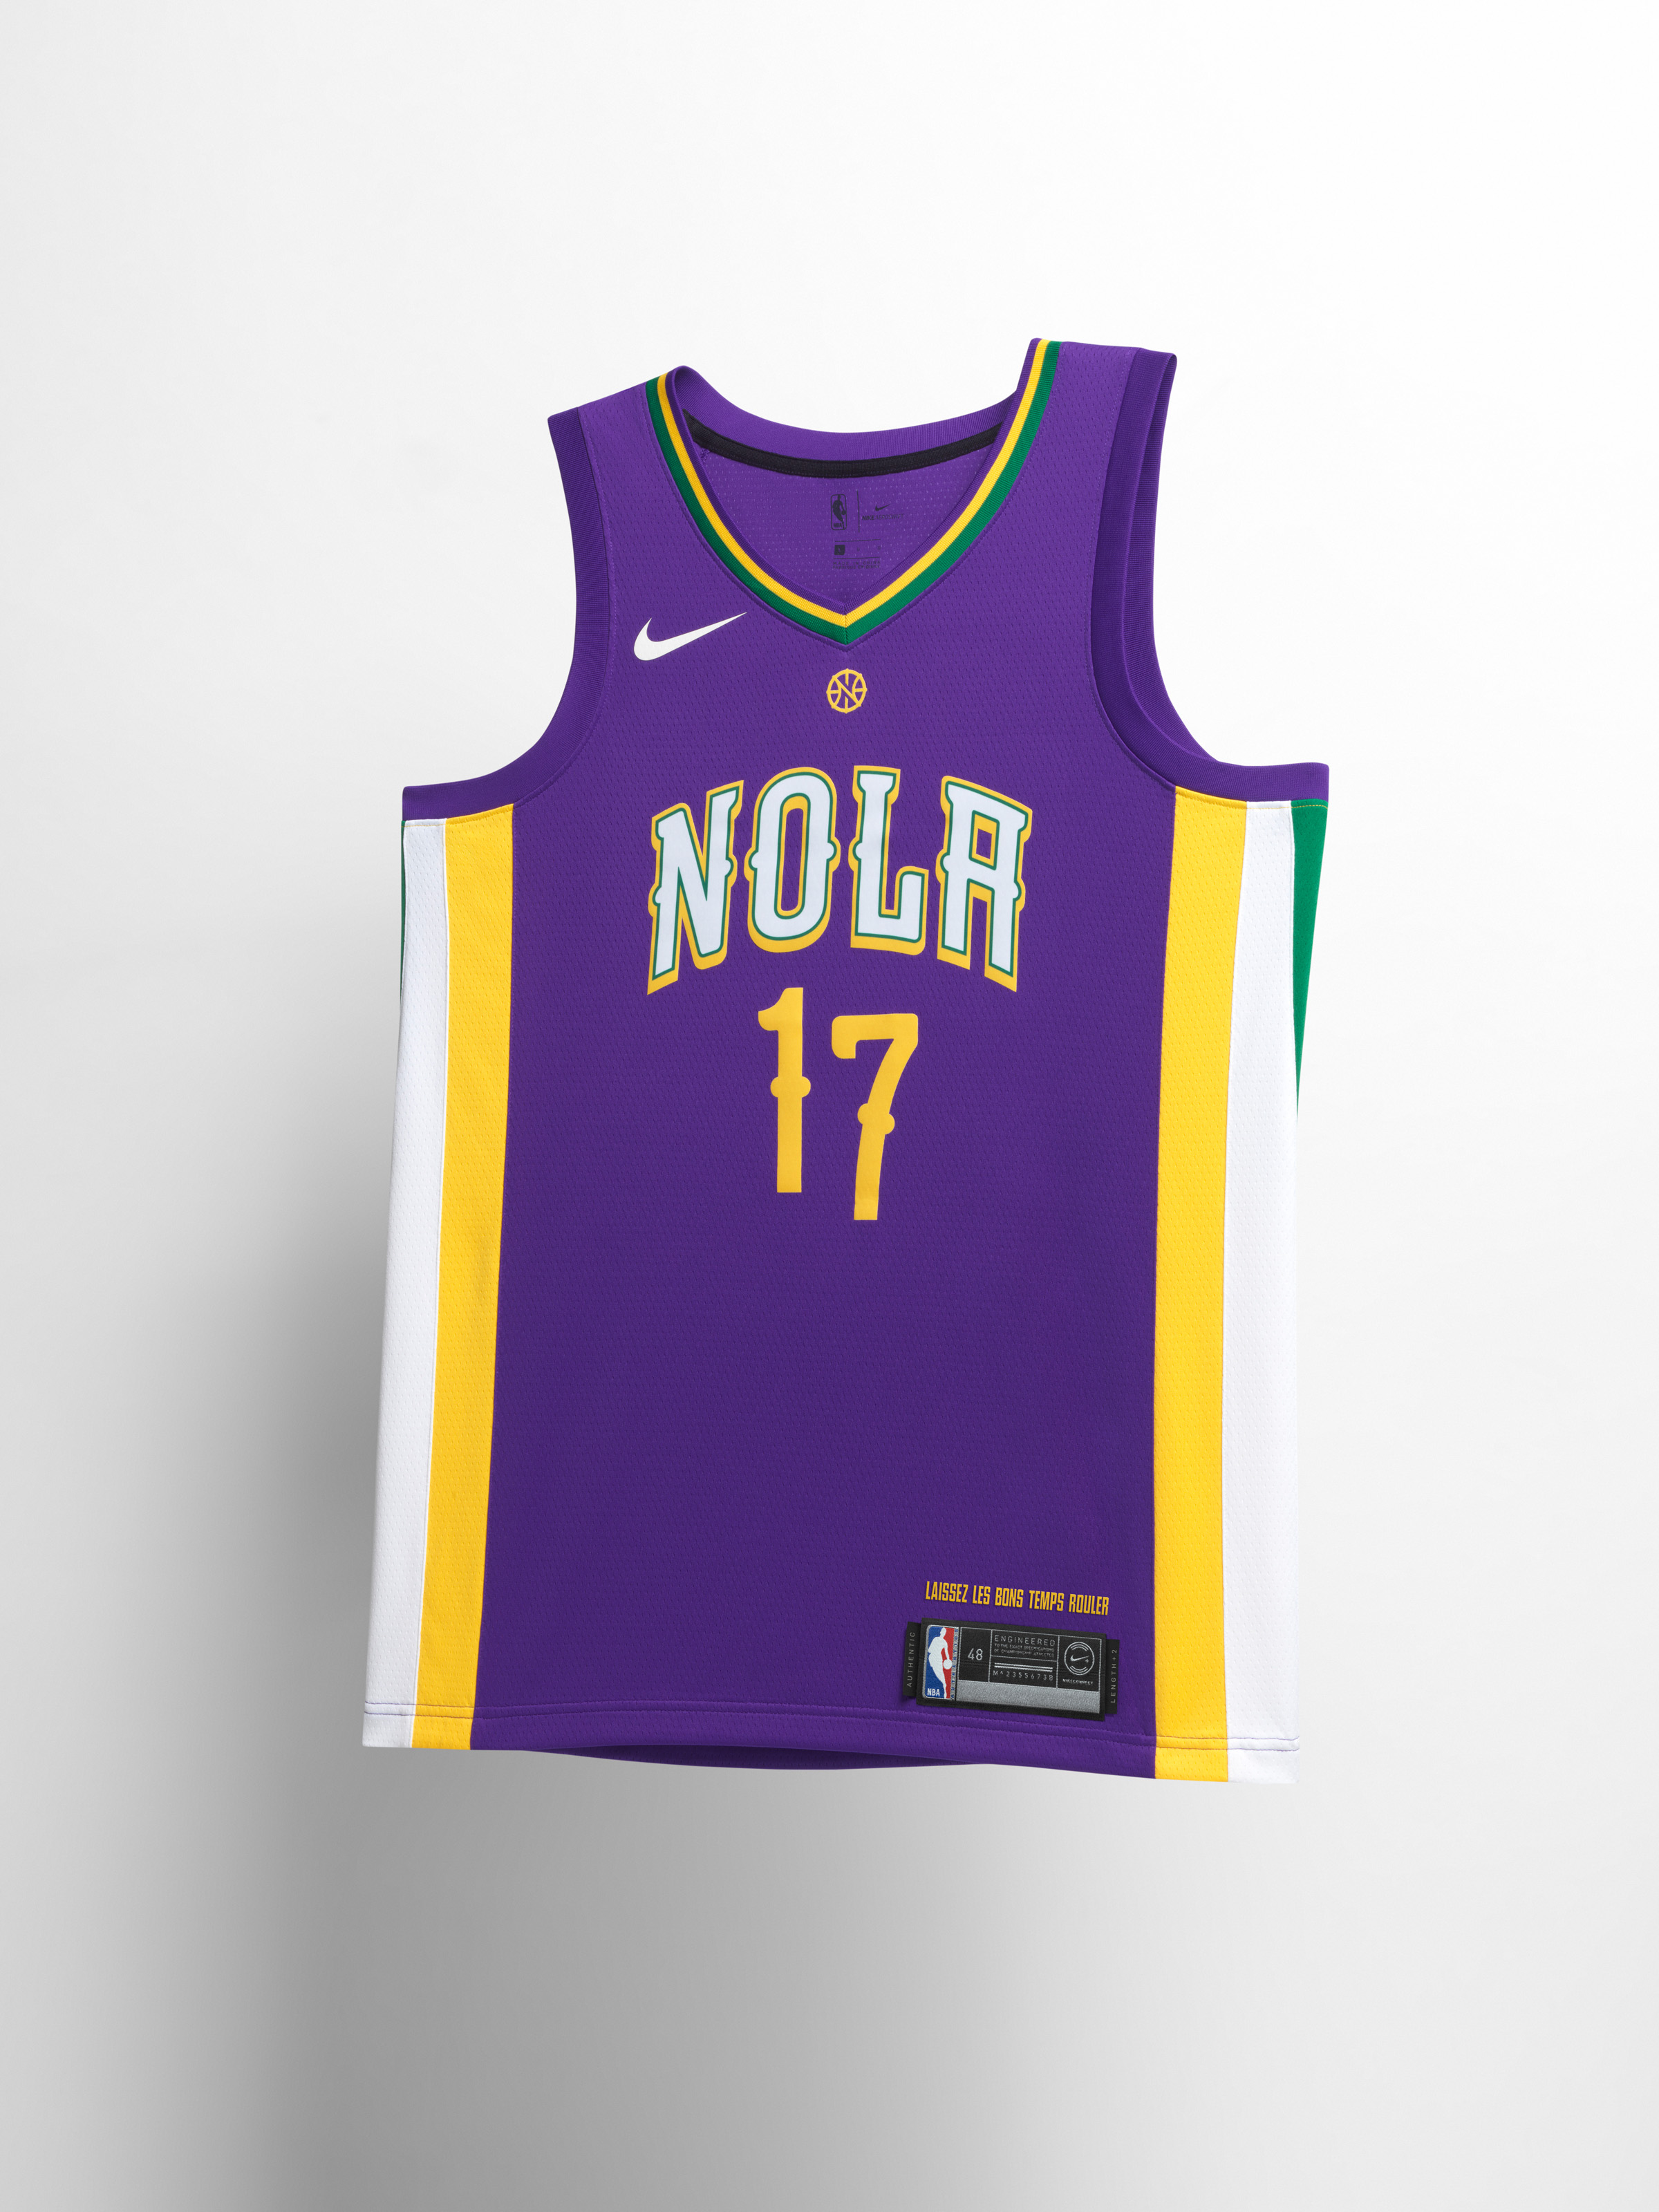 Nike s NBA City Edition jerseys  What they say about your city — Quartzy 2a896b62f